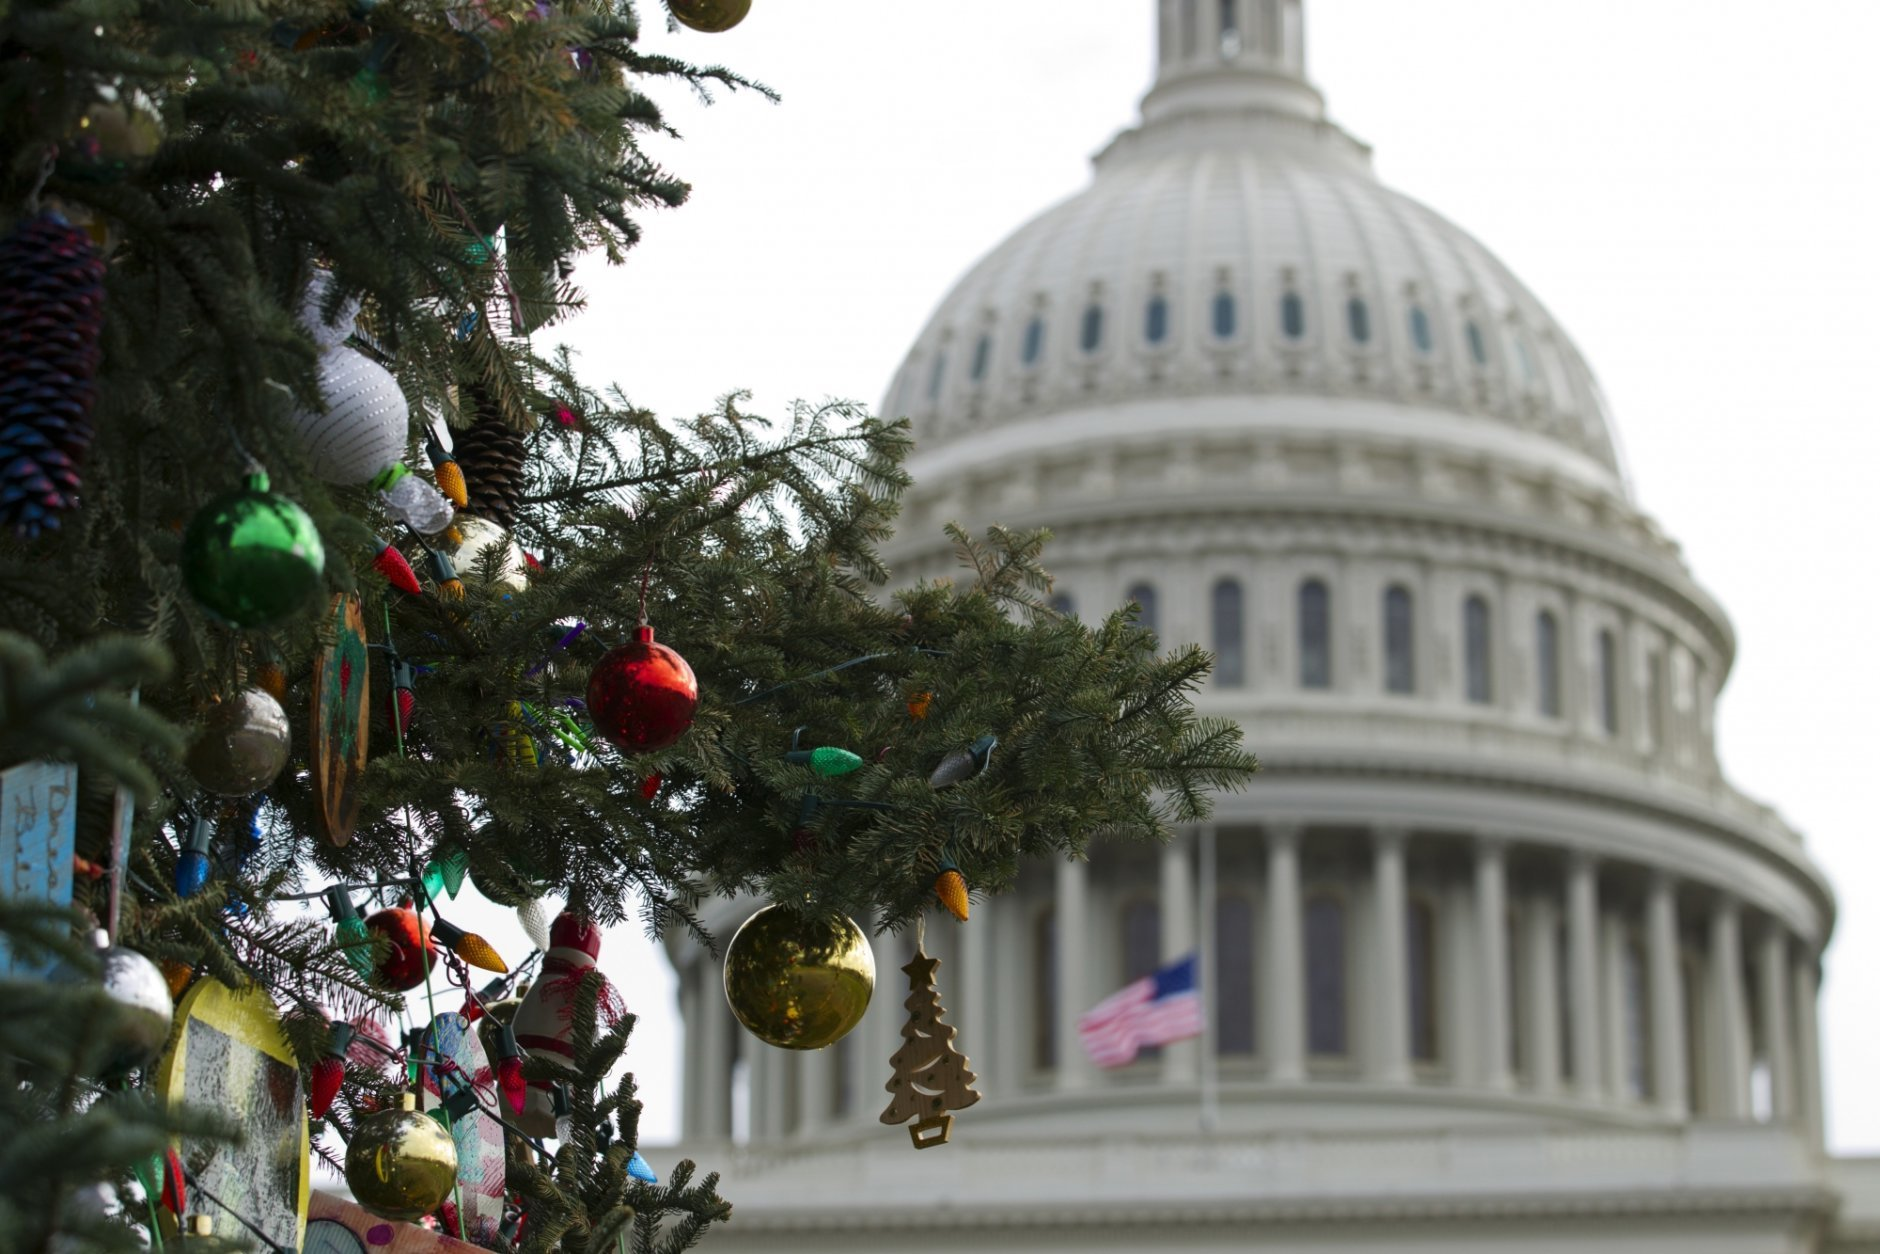 The Capitol Christmas tree decorations are seen outside of The U.S. Capitol in Washington, Friday, Dec. 21, 2018. Republican-led House approved funding for President Donald Trump's border wall in legislation that pushes the government closer to a partial government shutdown. The bill now goes to the Senate. (AP Photo/Jose Luis Magana)